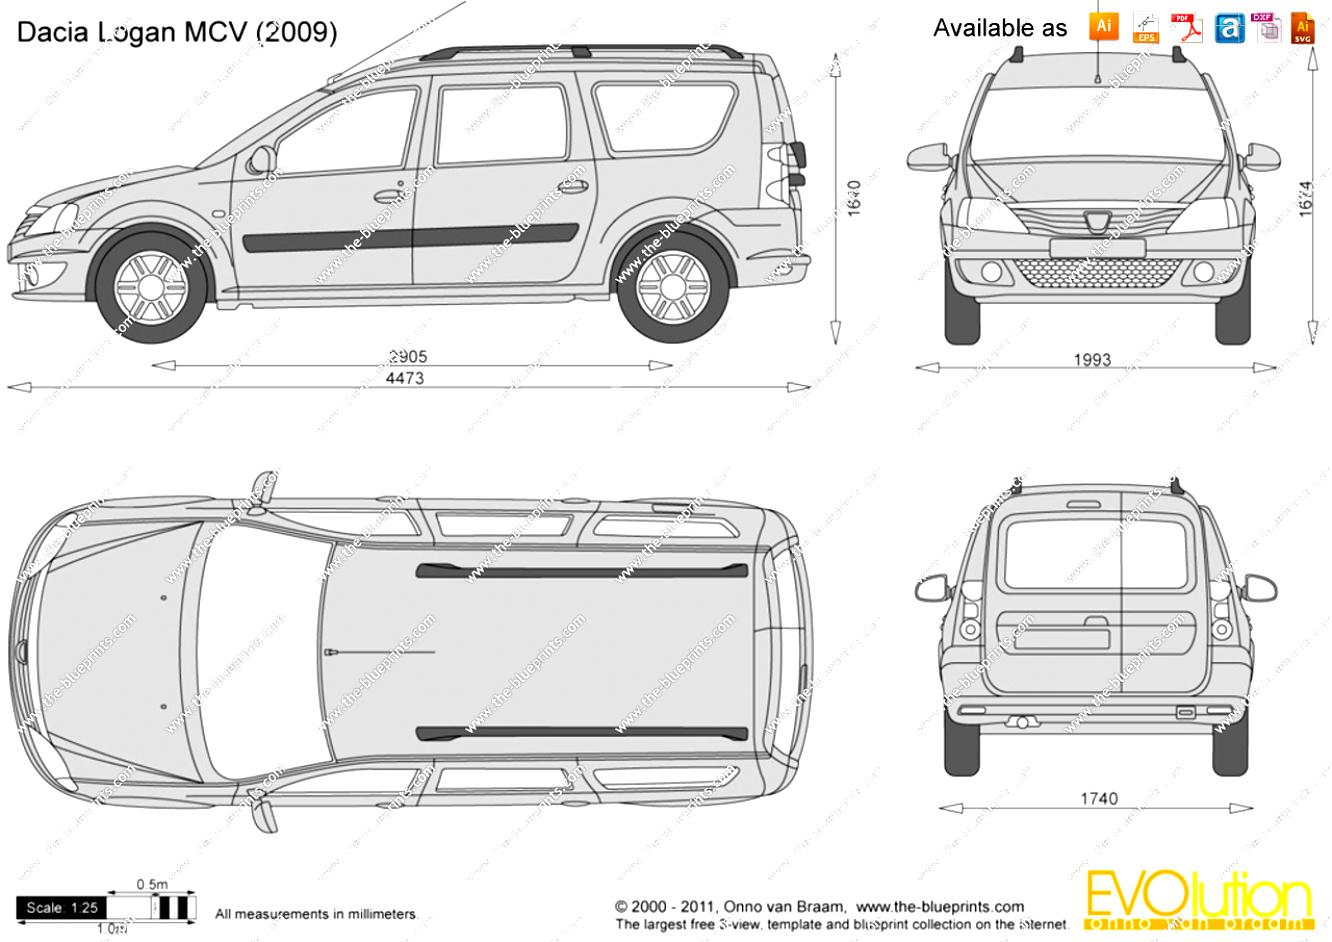 Dacia Logan MCV 2008 on MotoImg.com